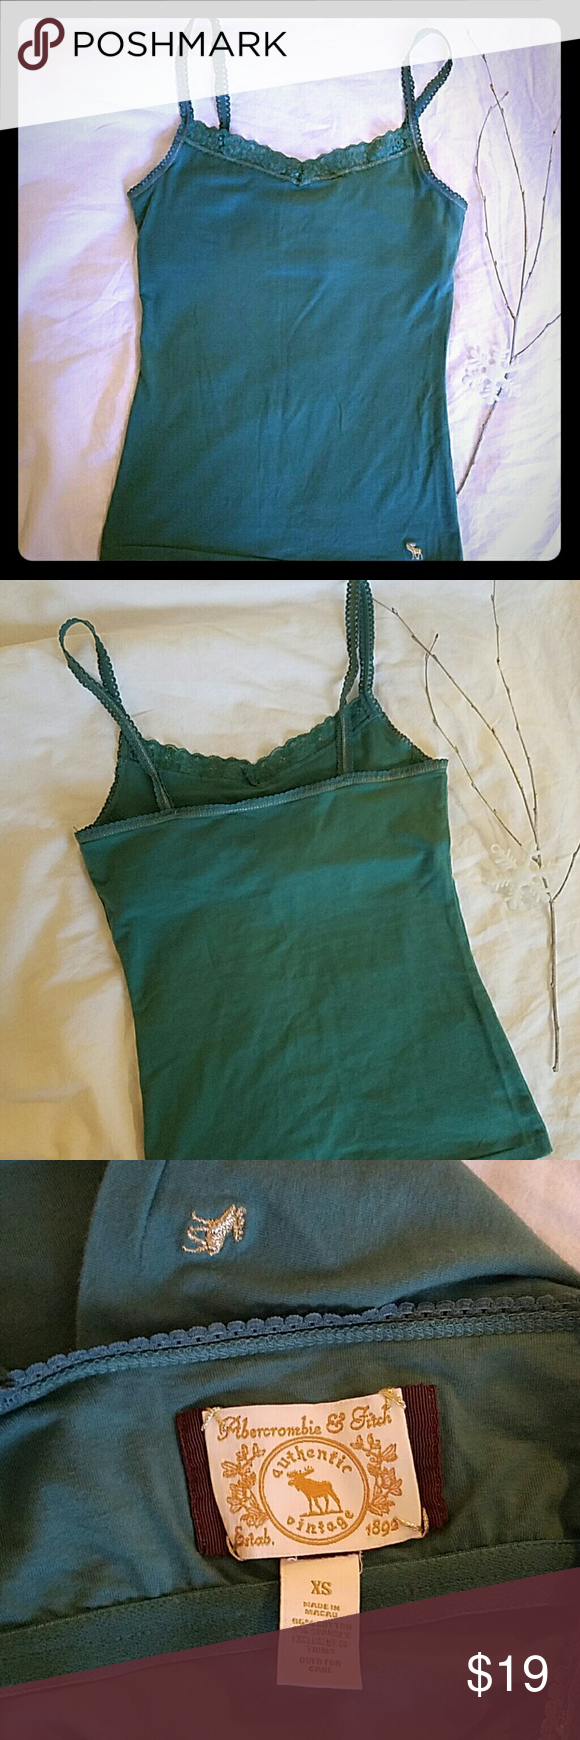 Abercrombie & Fitch tank top Beautiful turquoise tank top with silver metallic thread ditail and lace. Has a built-in bra. Size XS. Excellent condition! Abercrombie & Fitch Tops Tank Tops